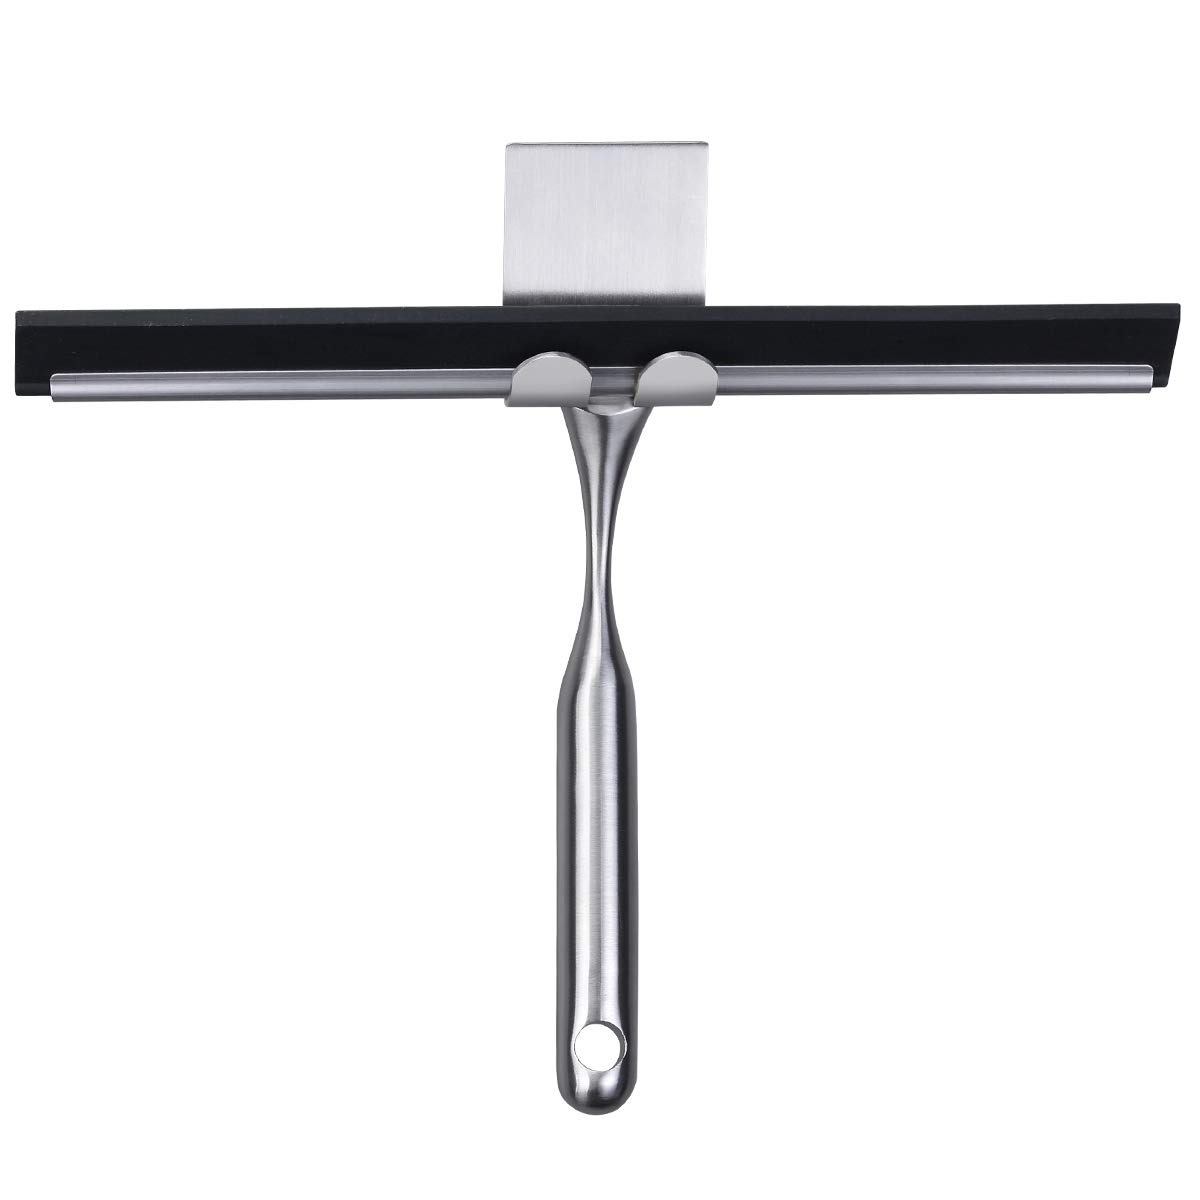 Fle Shower Squeegee, Bathroom Shower Squeegee SUS-304 Stainless Steel Squeegee for Car Glass/Mirror/Window, Kitchen Floor Squeegee with 3M Self-Adhesive Hook